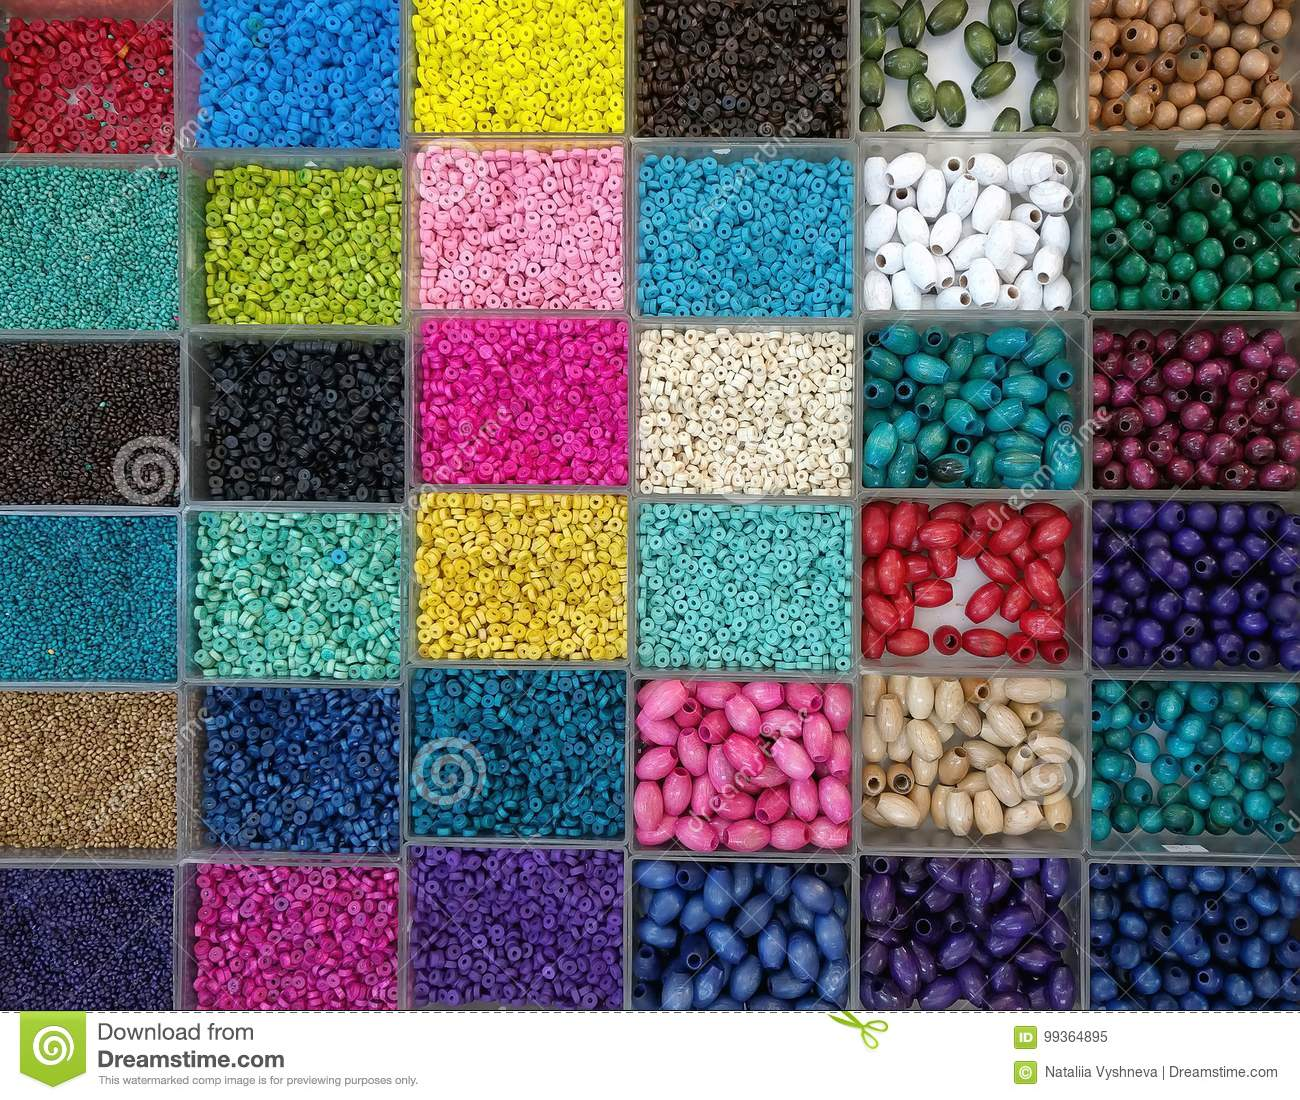 Background of colorful bright beads in boxes, set for needlework